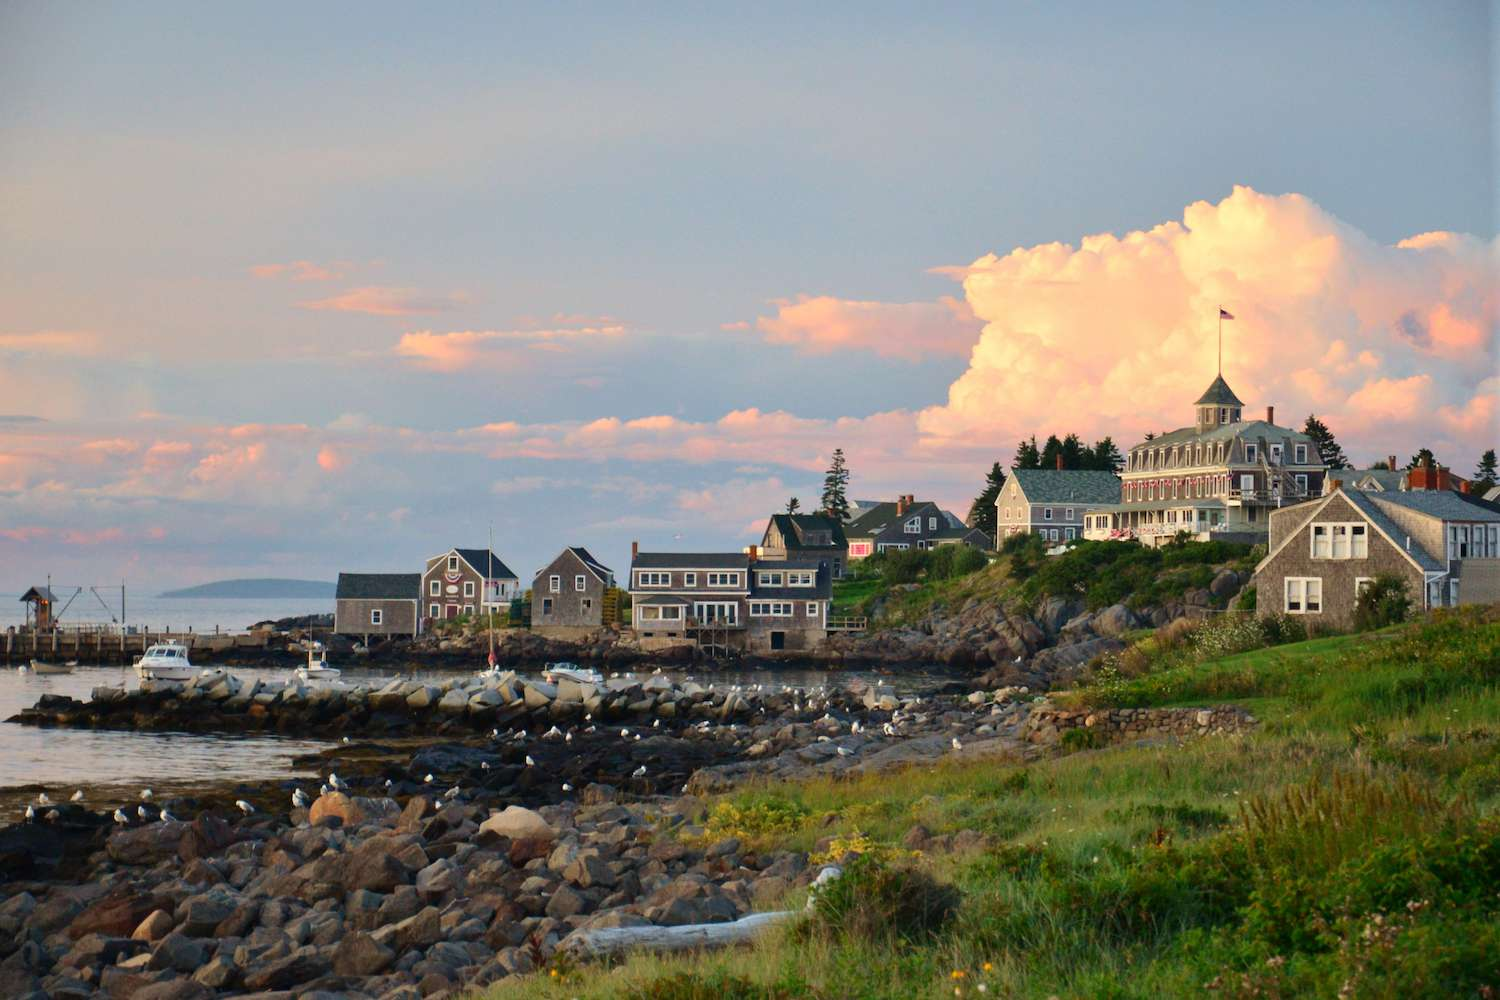 The sun sets on the houses of the picturesque Monhegan Island